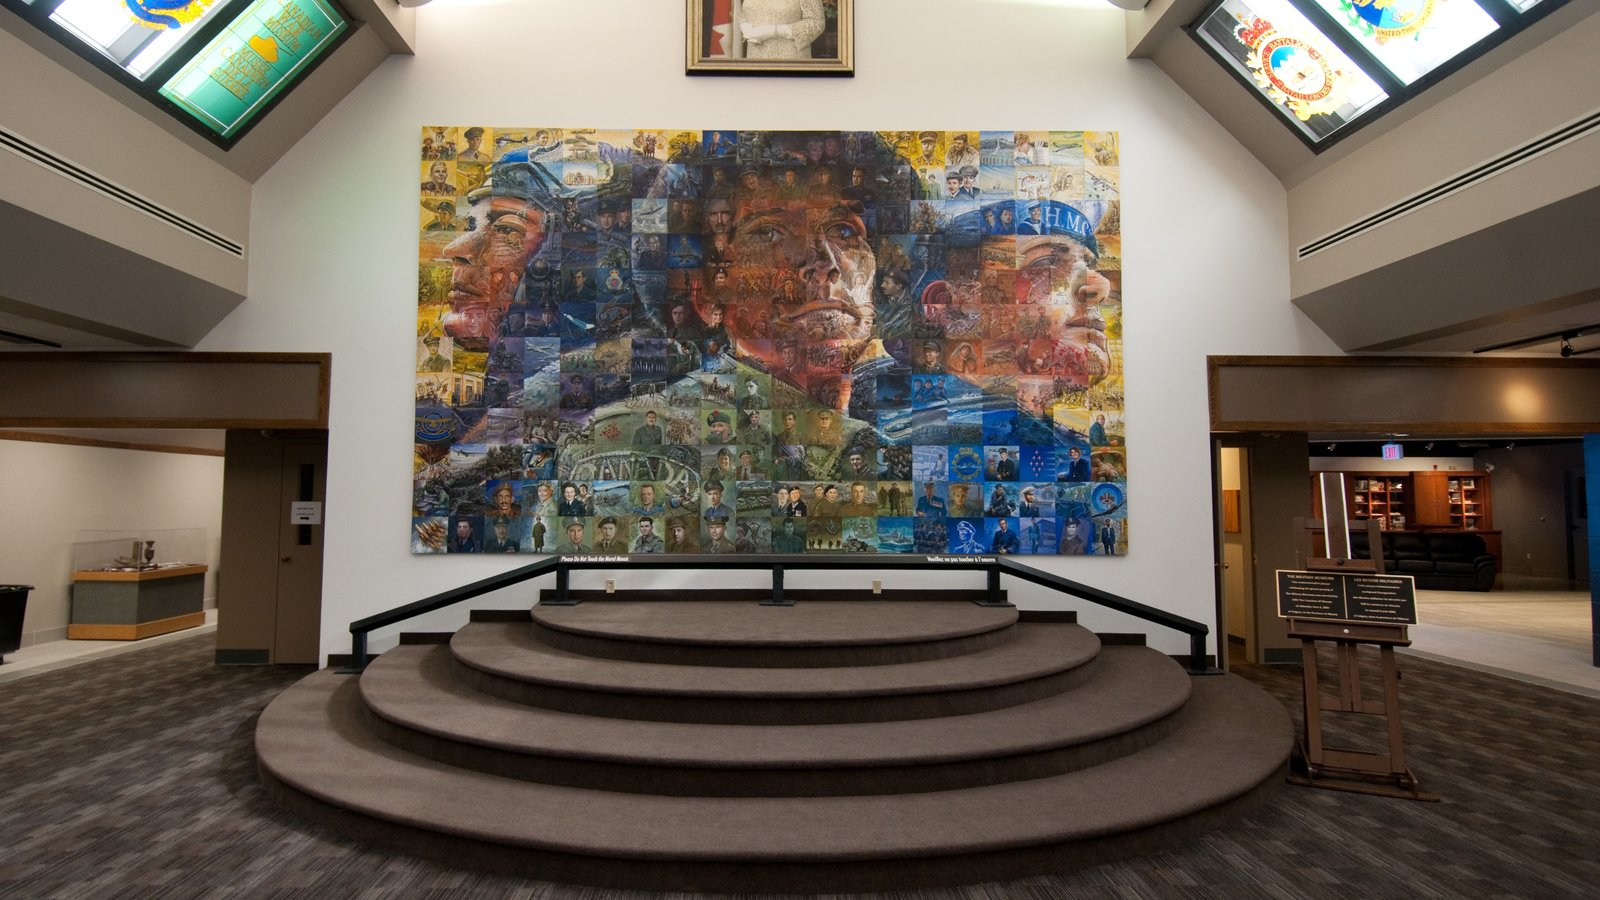 The Military Museums which includes art and interior views